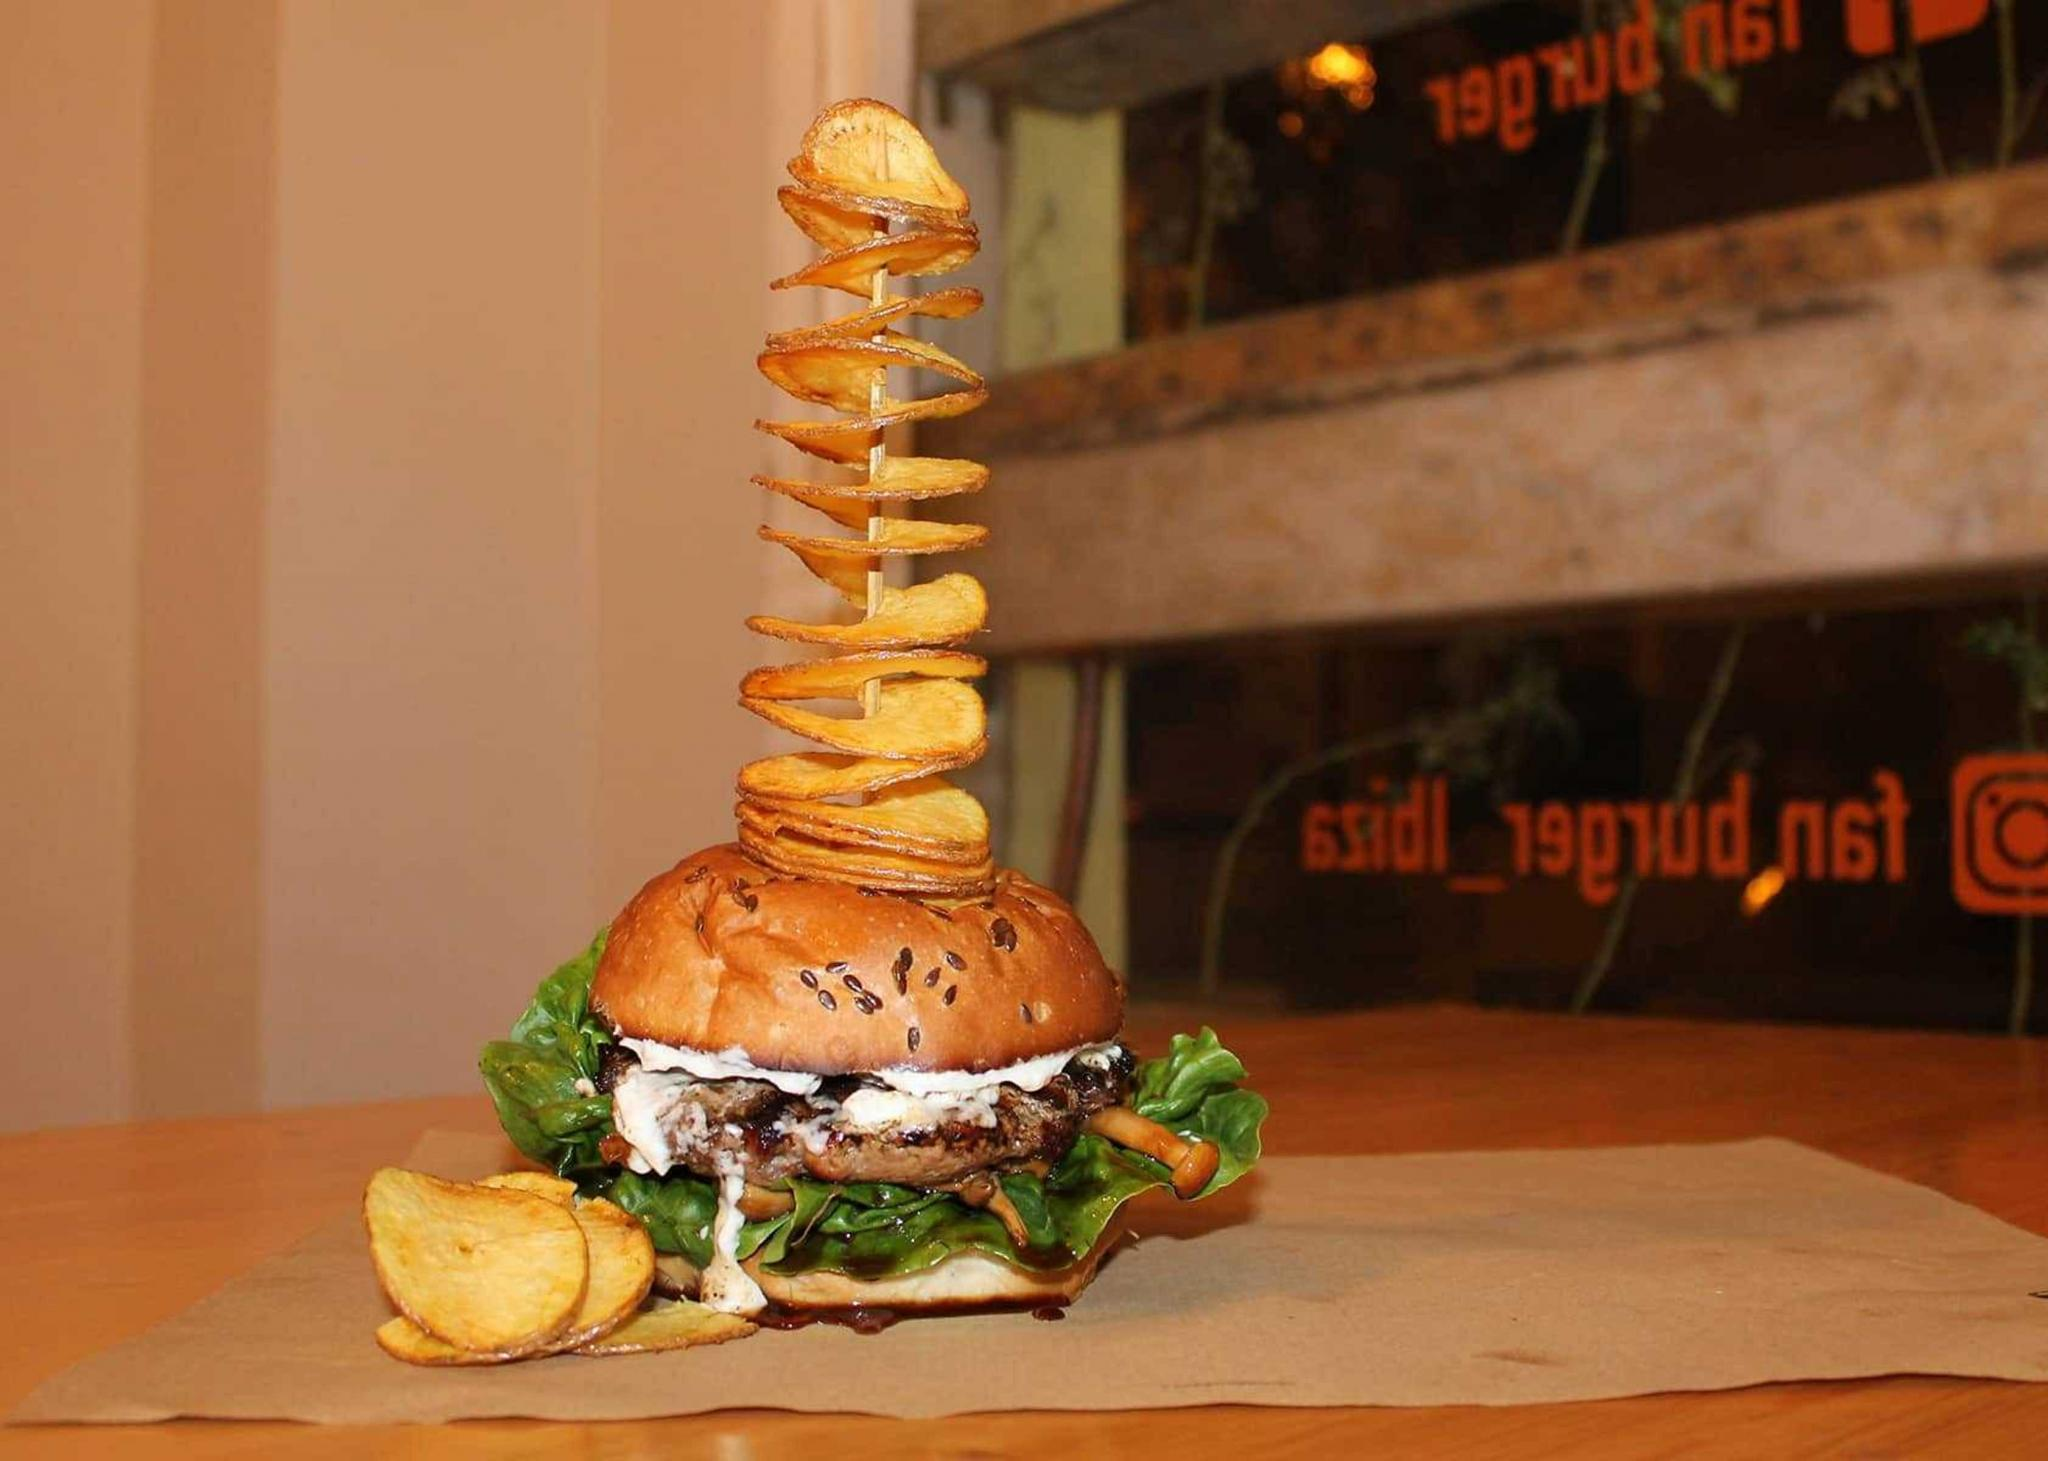 The traditional burger by Fan Burger, Ibiza